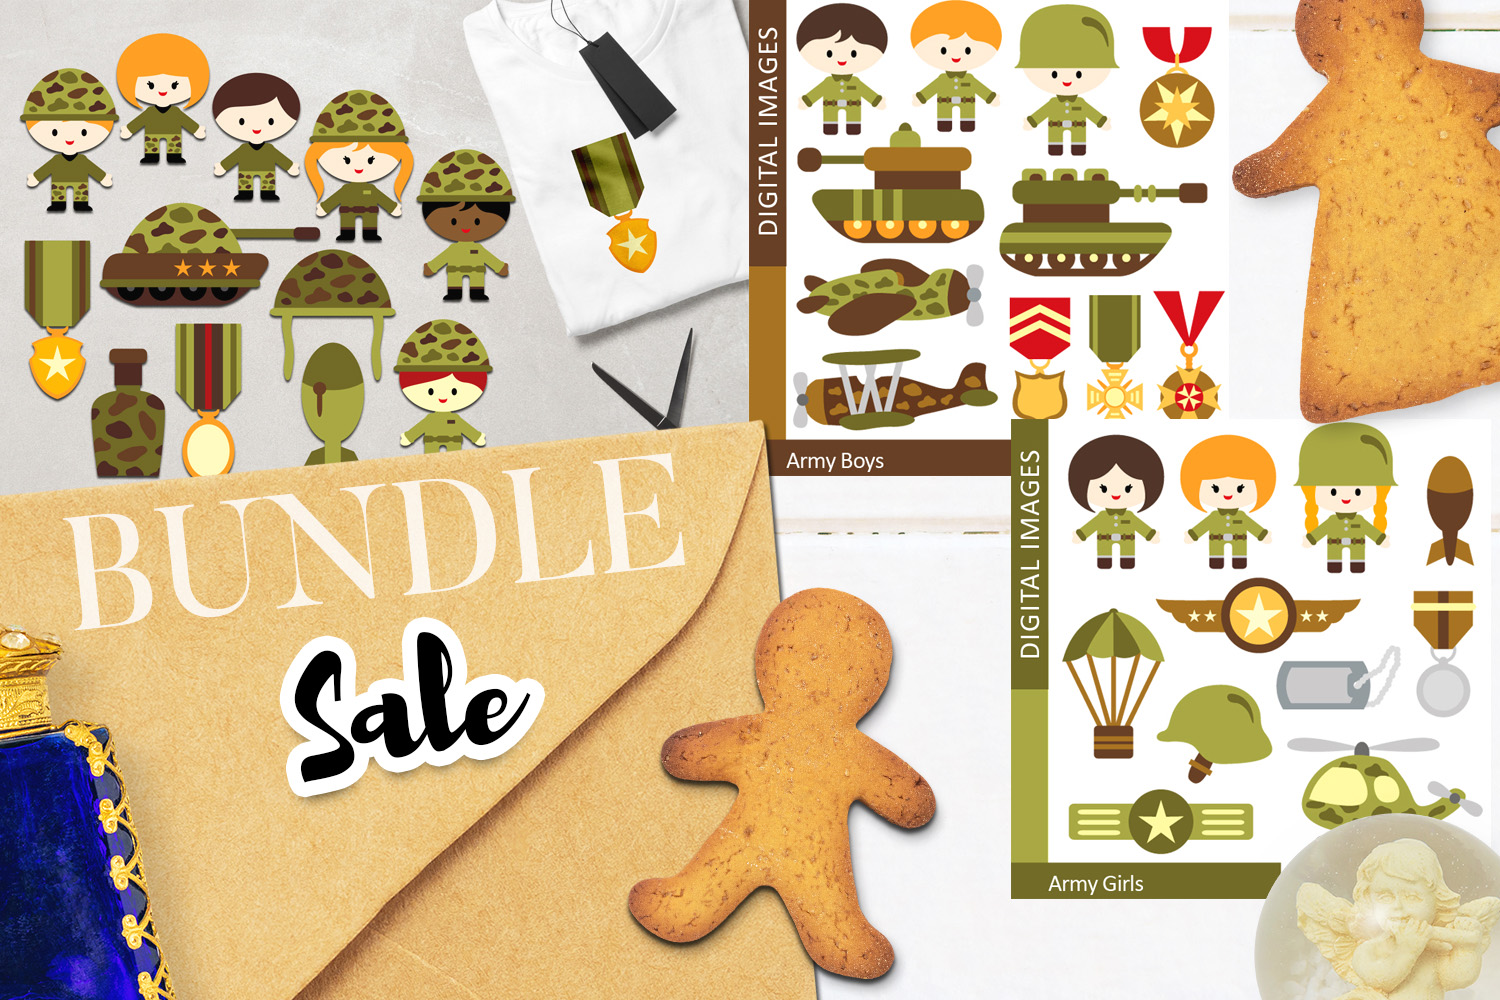 Download Free Military Army Kids Bundle Graphic By Revidevi Creative Fabrica for Cricut Explore, Silhouette and other cutting machines.